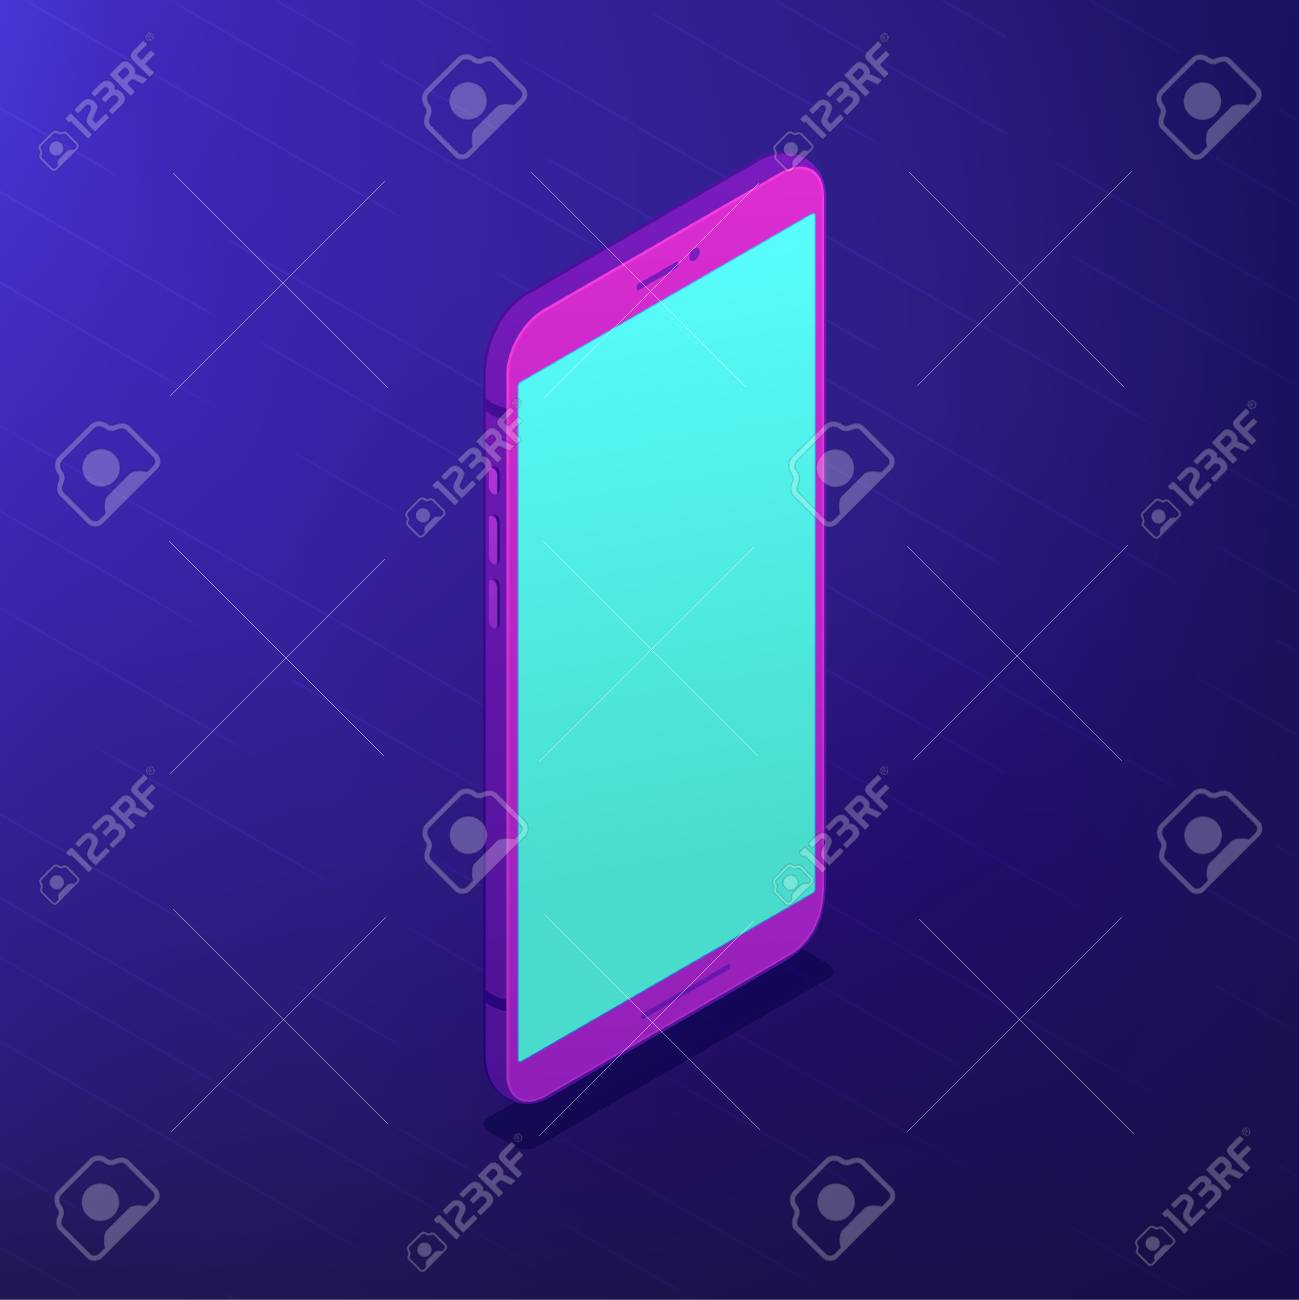 Isometric smartphone with a blue screen  Portable digital device